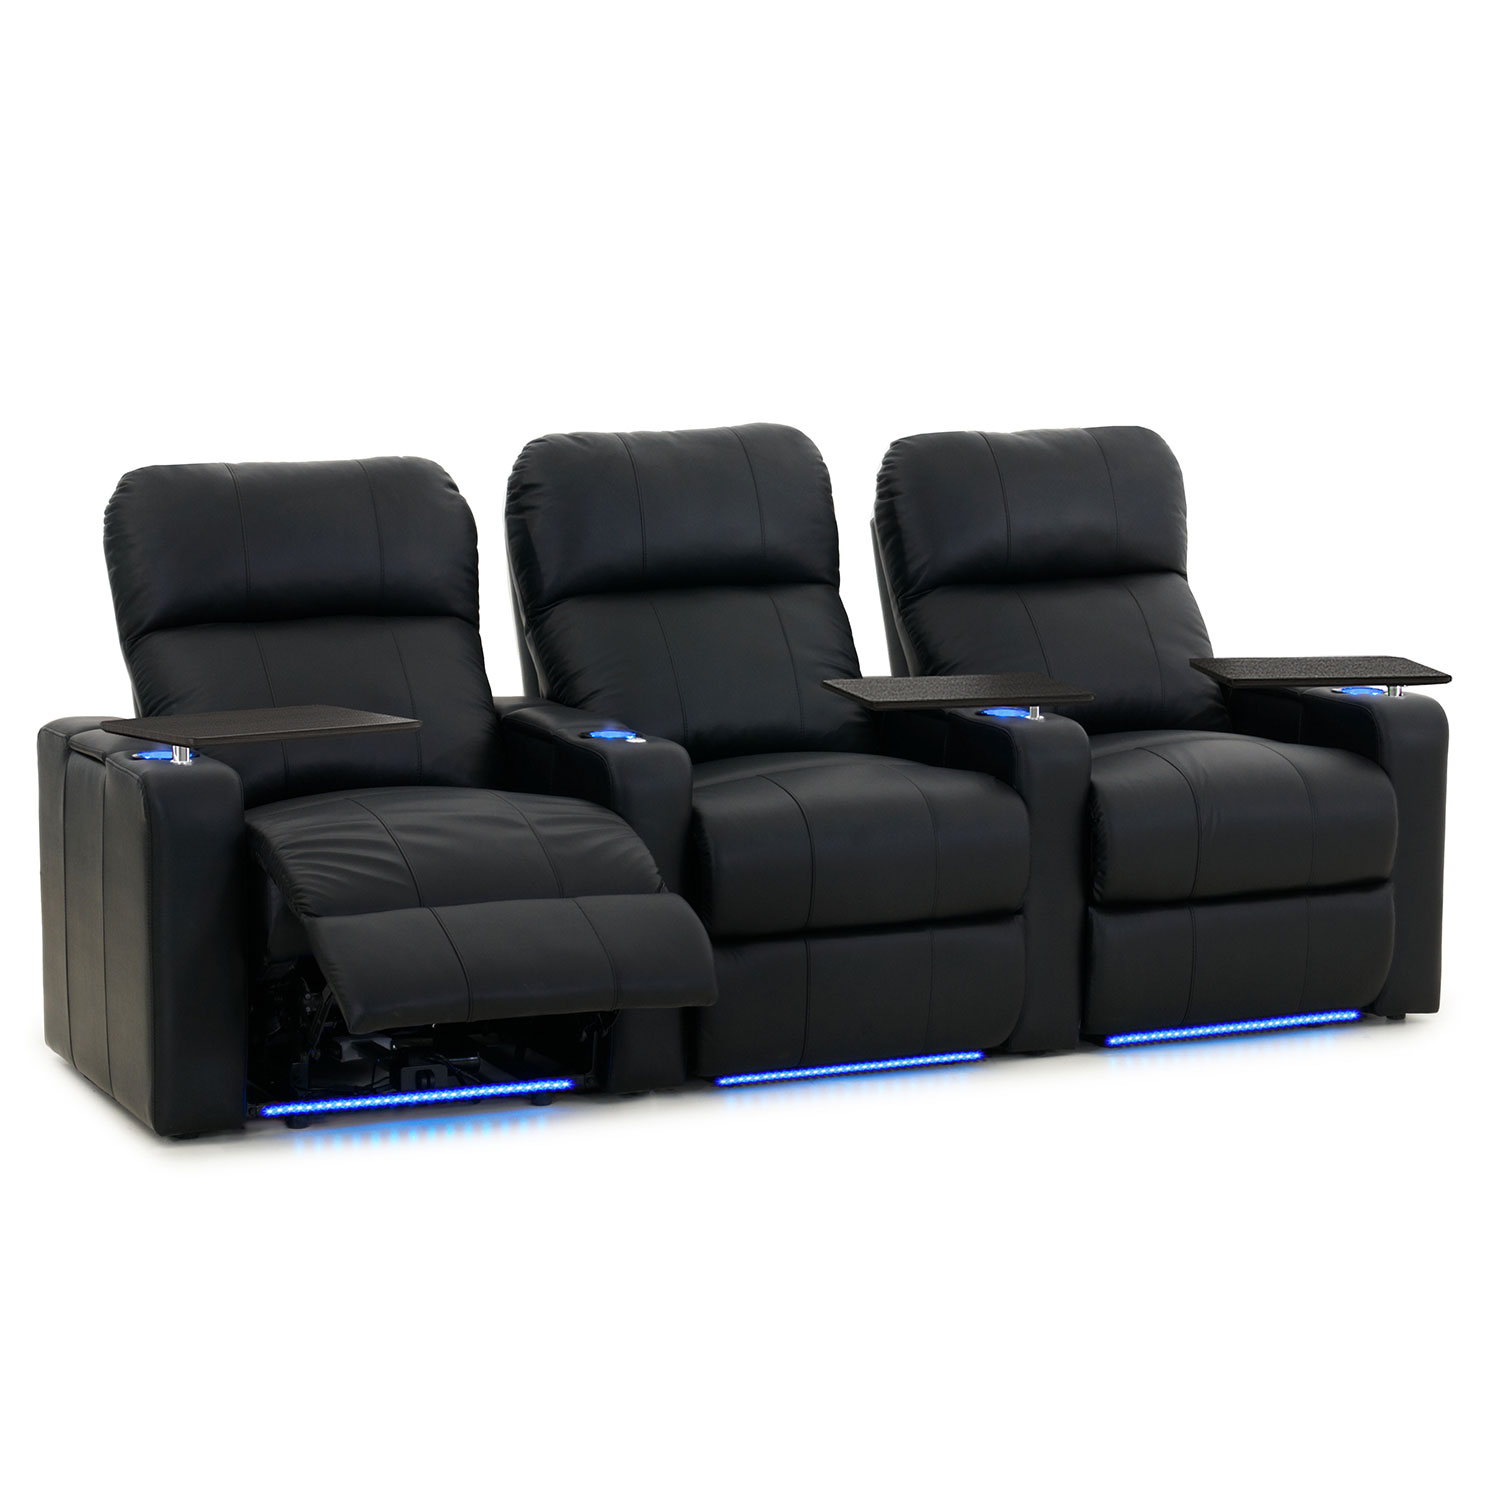 turbo 3seat bonded leather power recliner home theatre seating black home theatre seating best buy canada - Movie Theater Chairs